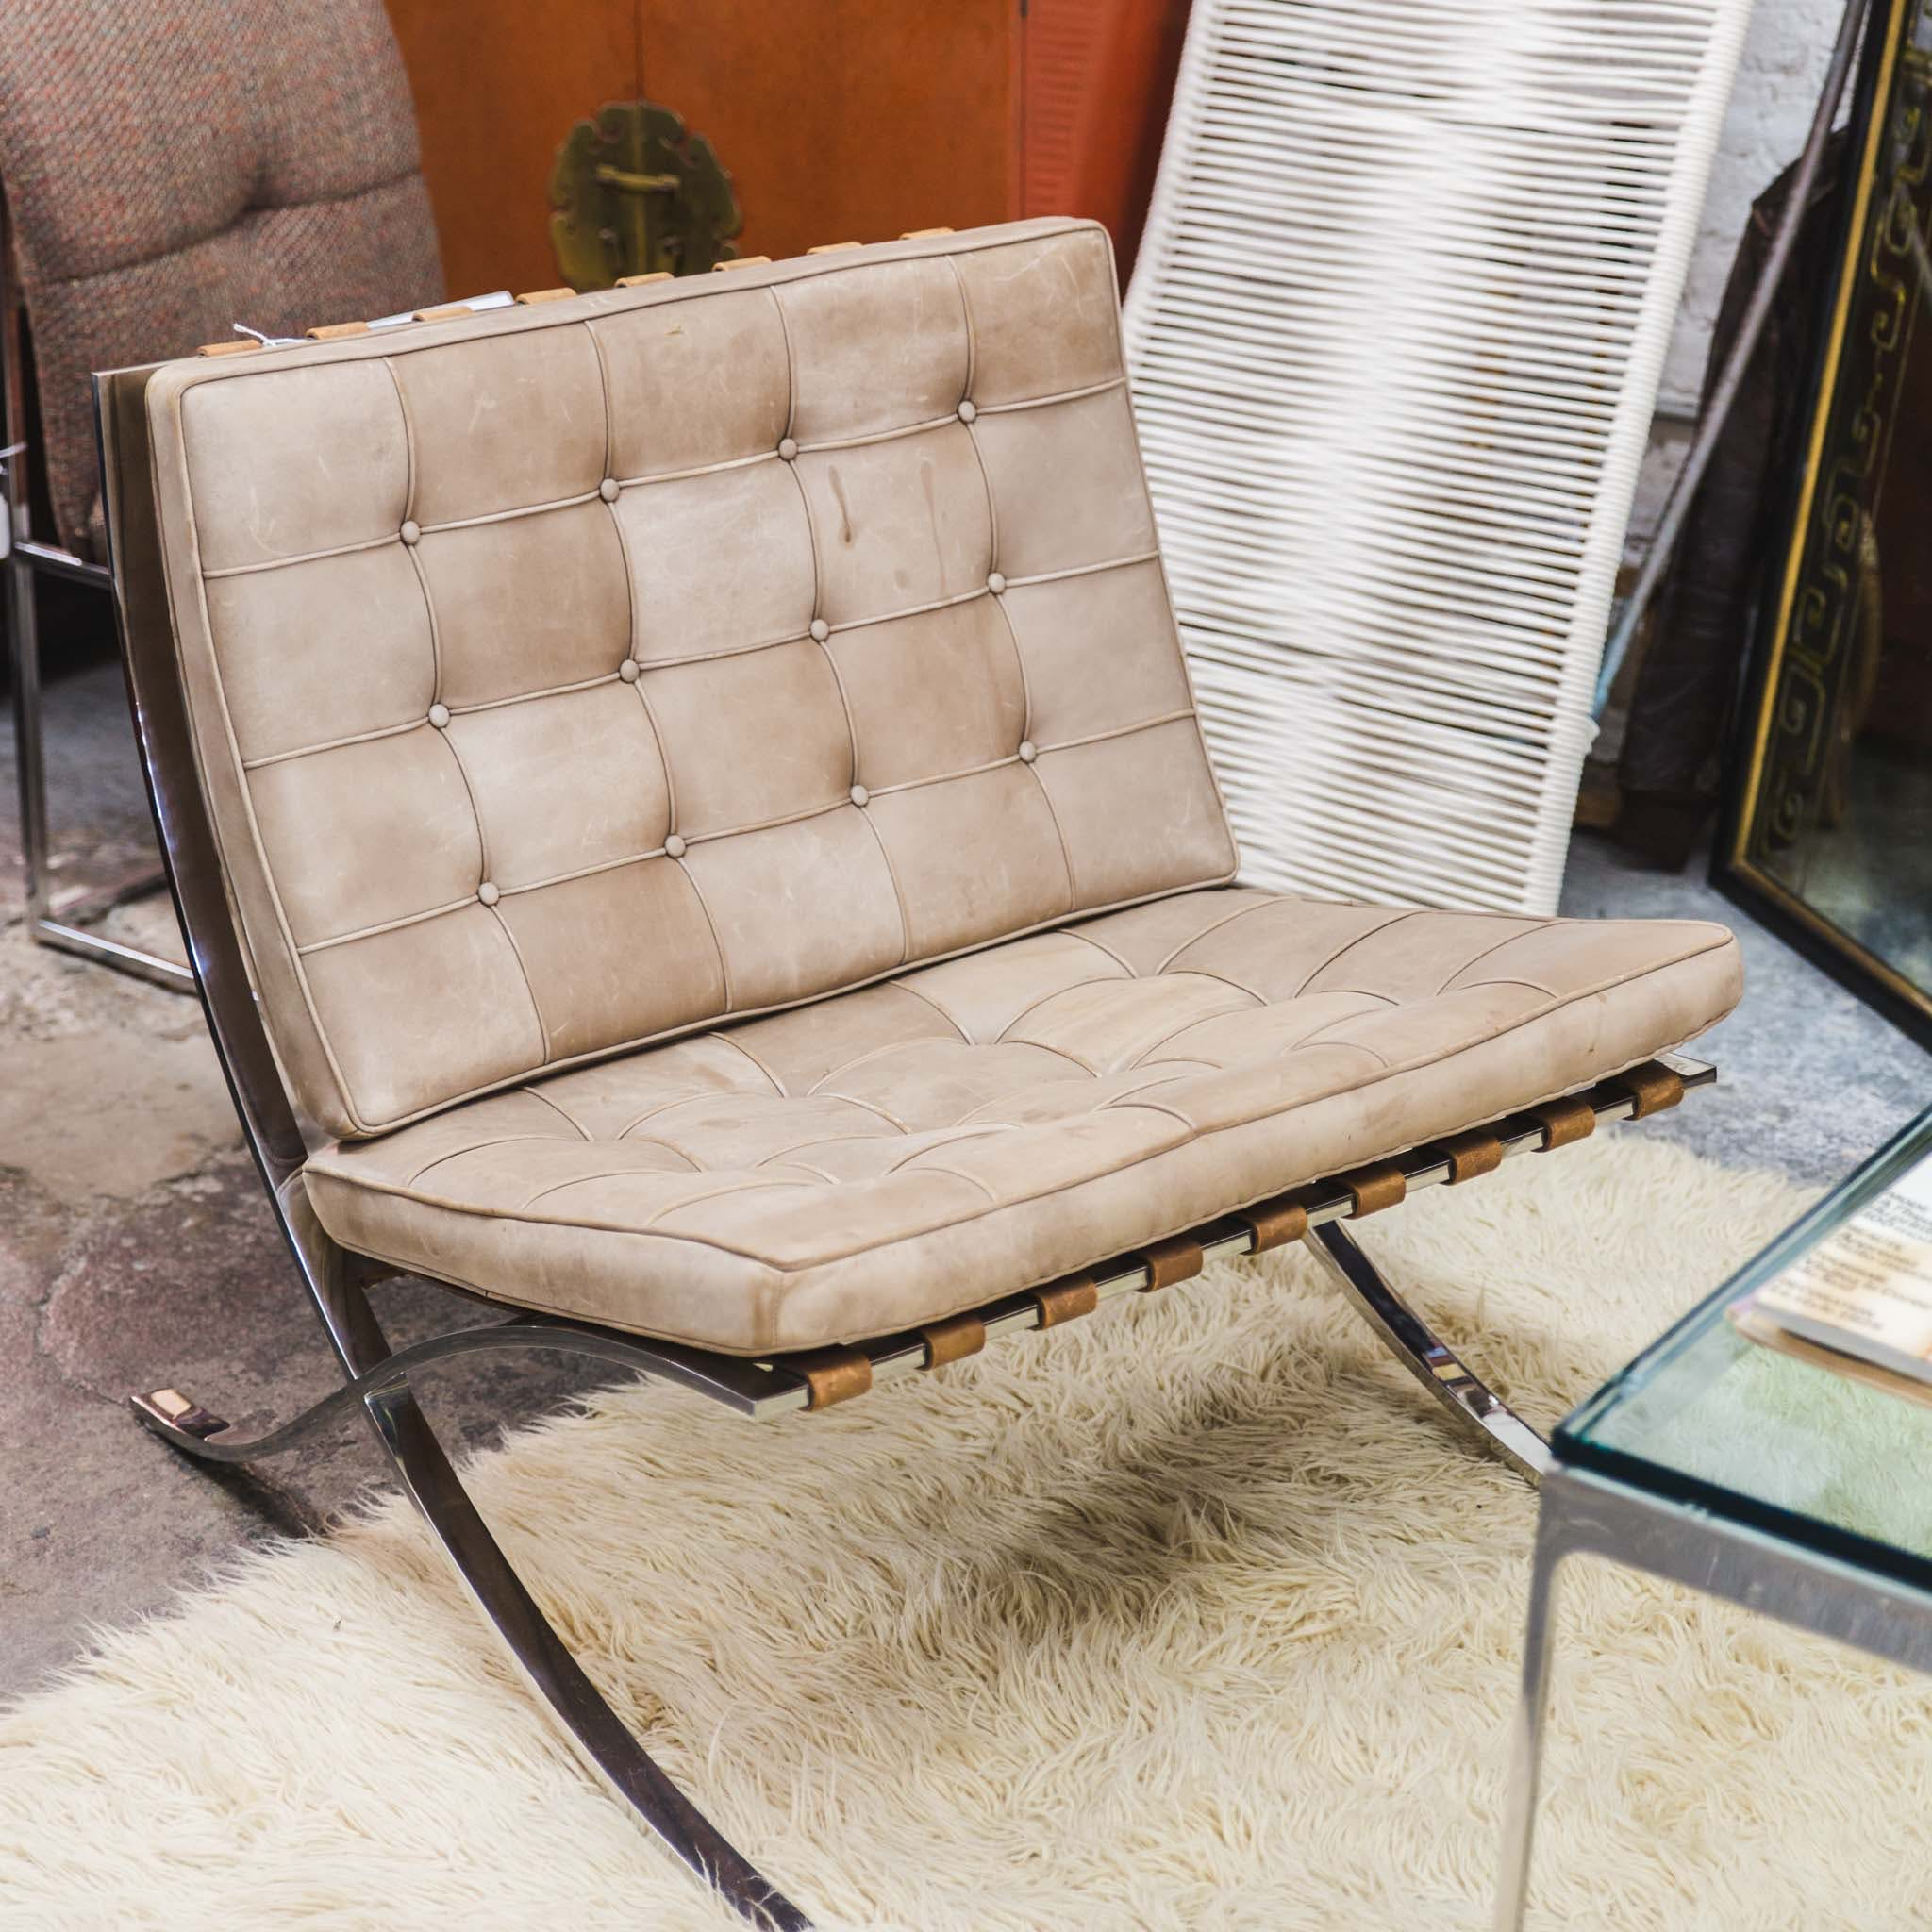 Vintage Barcelona Chair By Ludwig Mies Van Der Rohe Knoll Pair